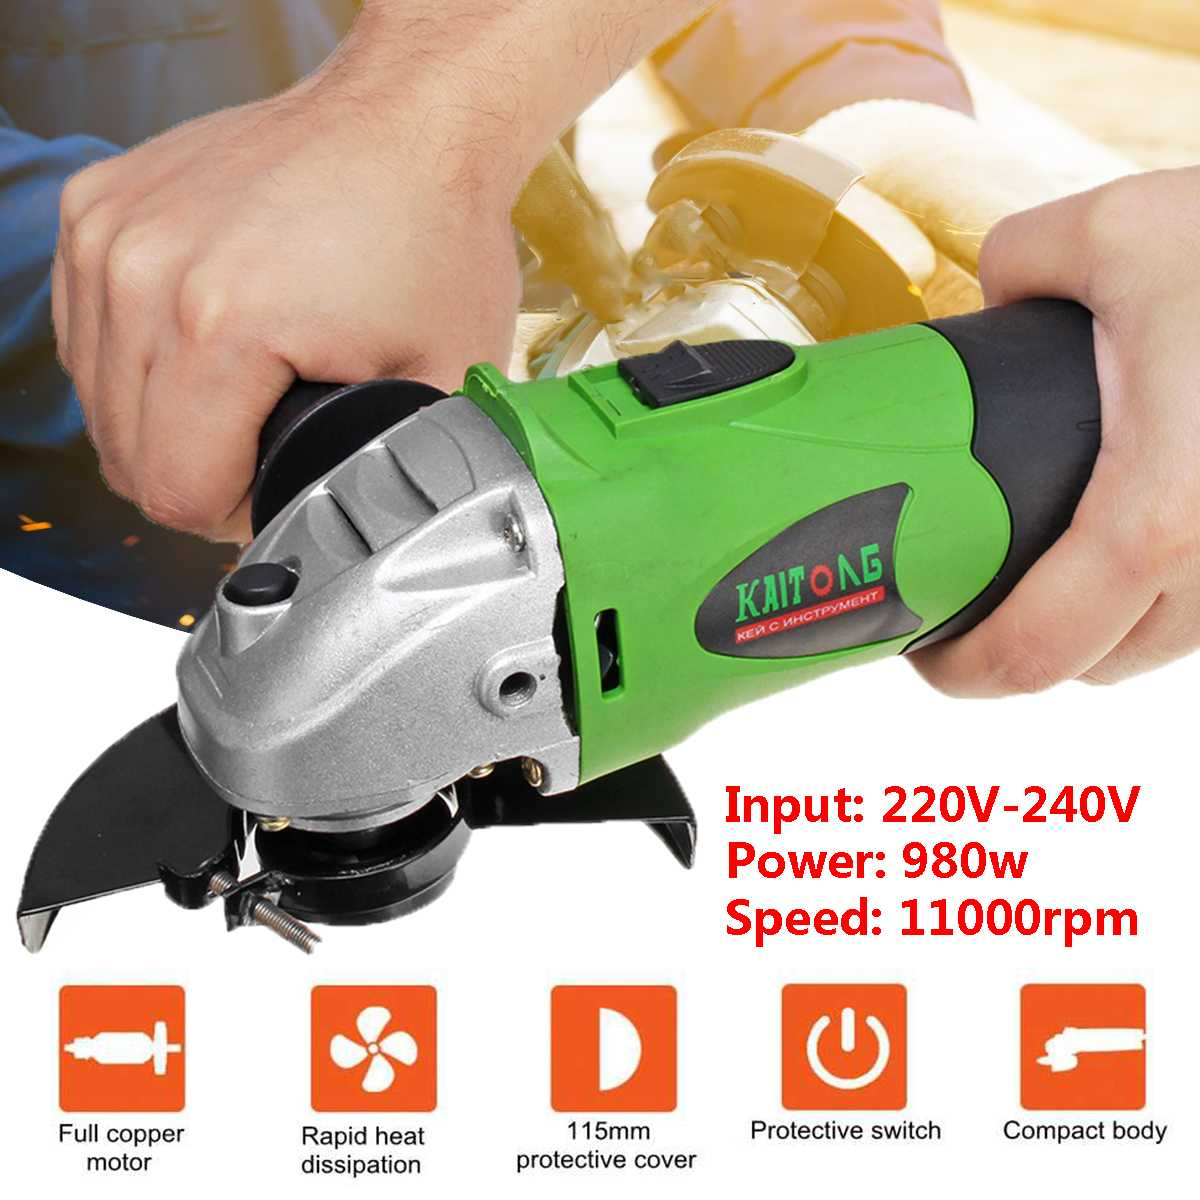 Metal Cutting Tool 980W Electric Angle Grinder 115-125mm Grinding Machine 11000RPM Adjustable Anti-Slip EU PLug Powerful Protect